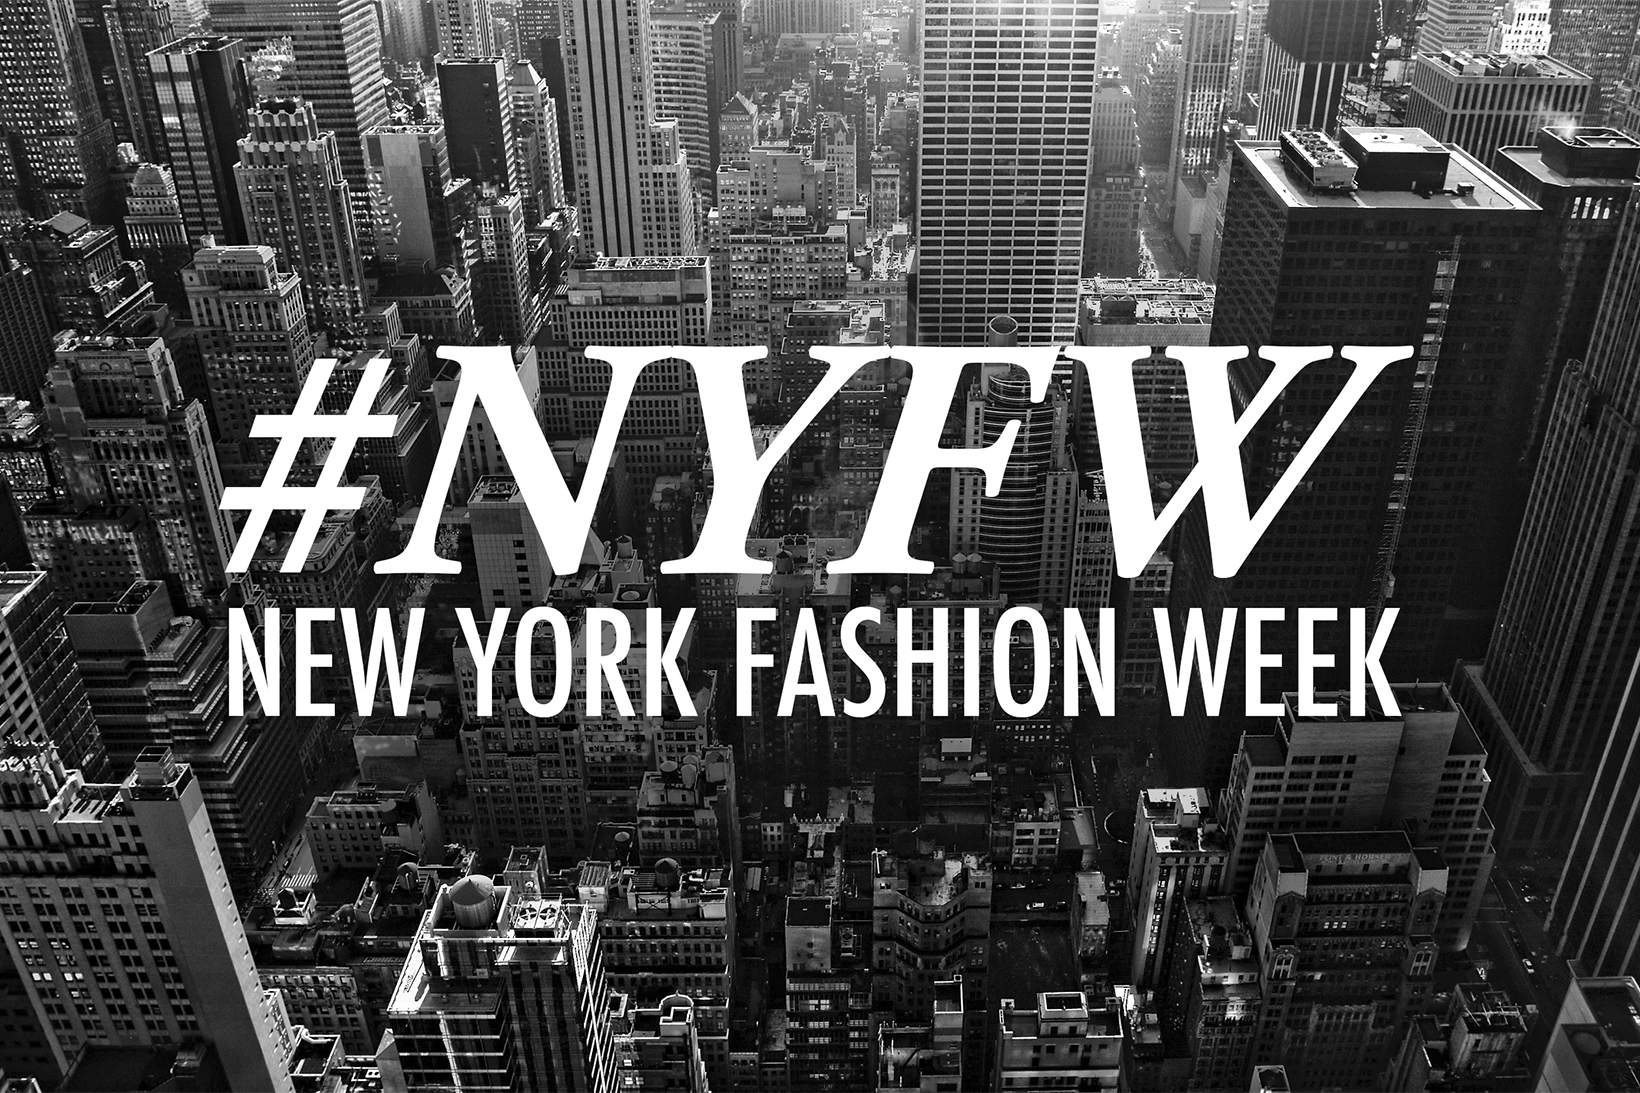 Google Wants to Be Your Go-To for Fashion Week Coverage